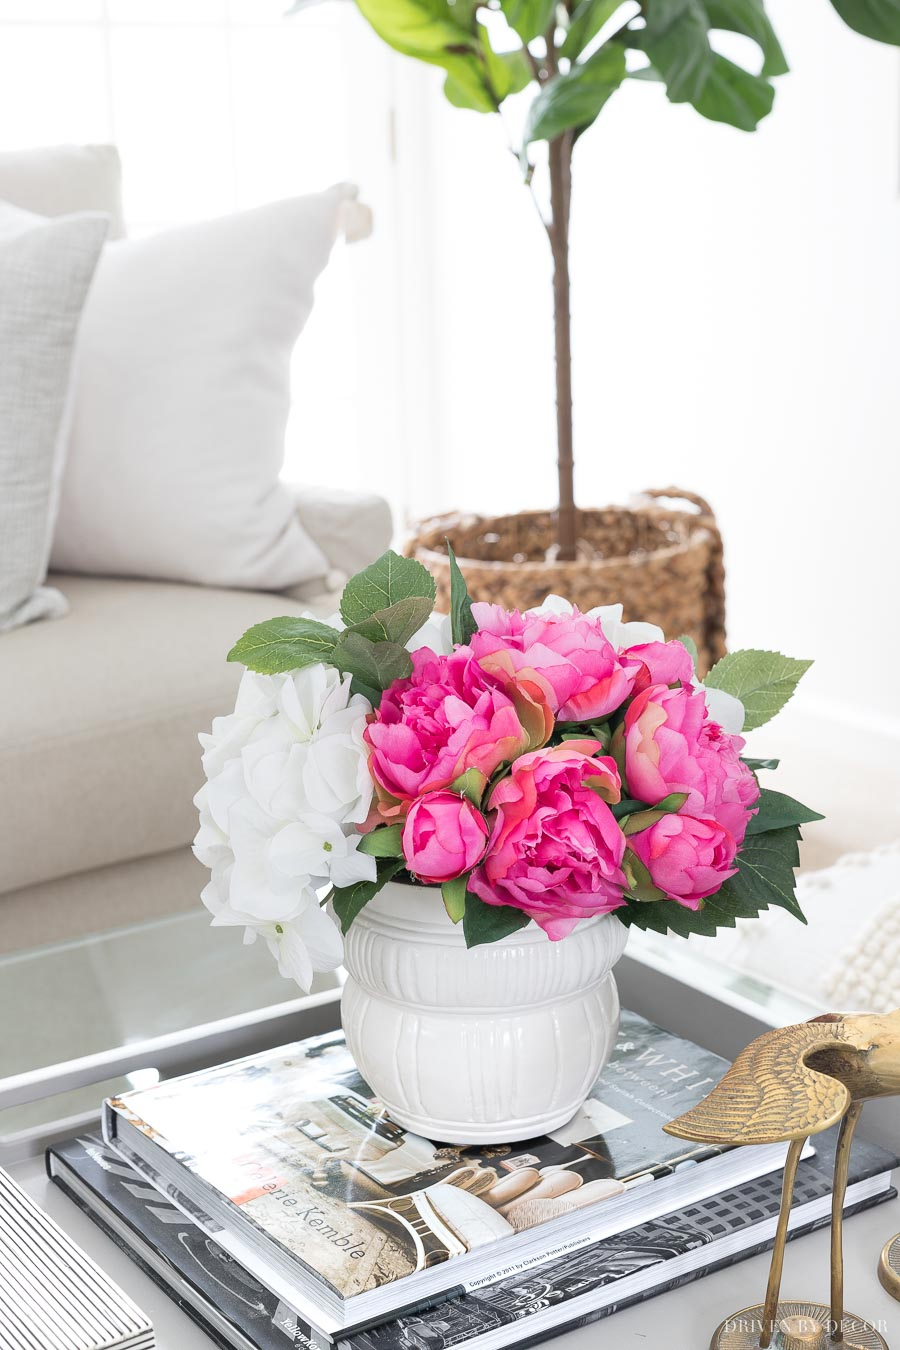 These faux peonies and hydrangeas in a simple white planter are beautiful as coffee table decor!